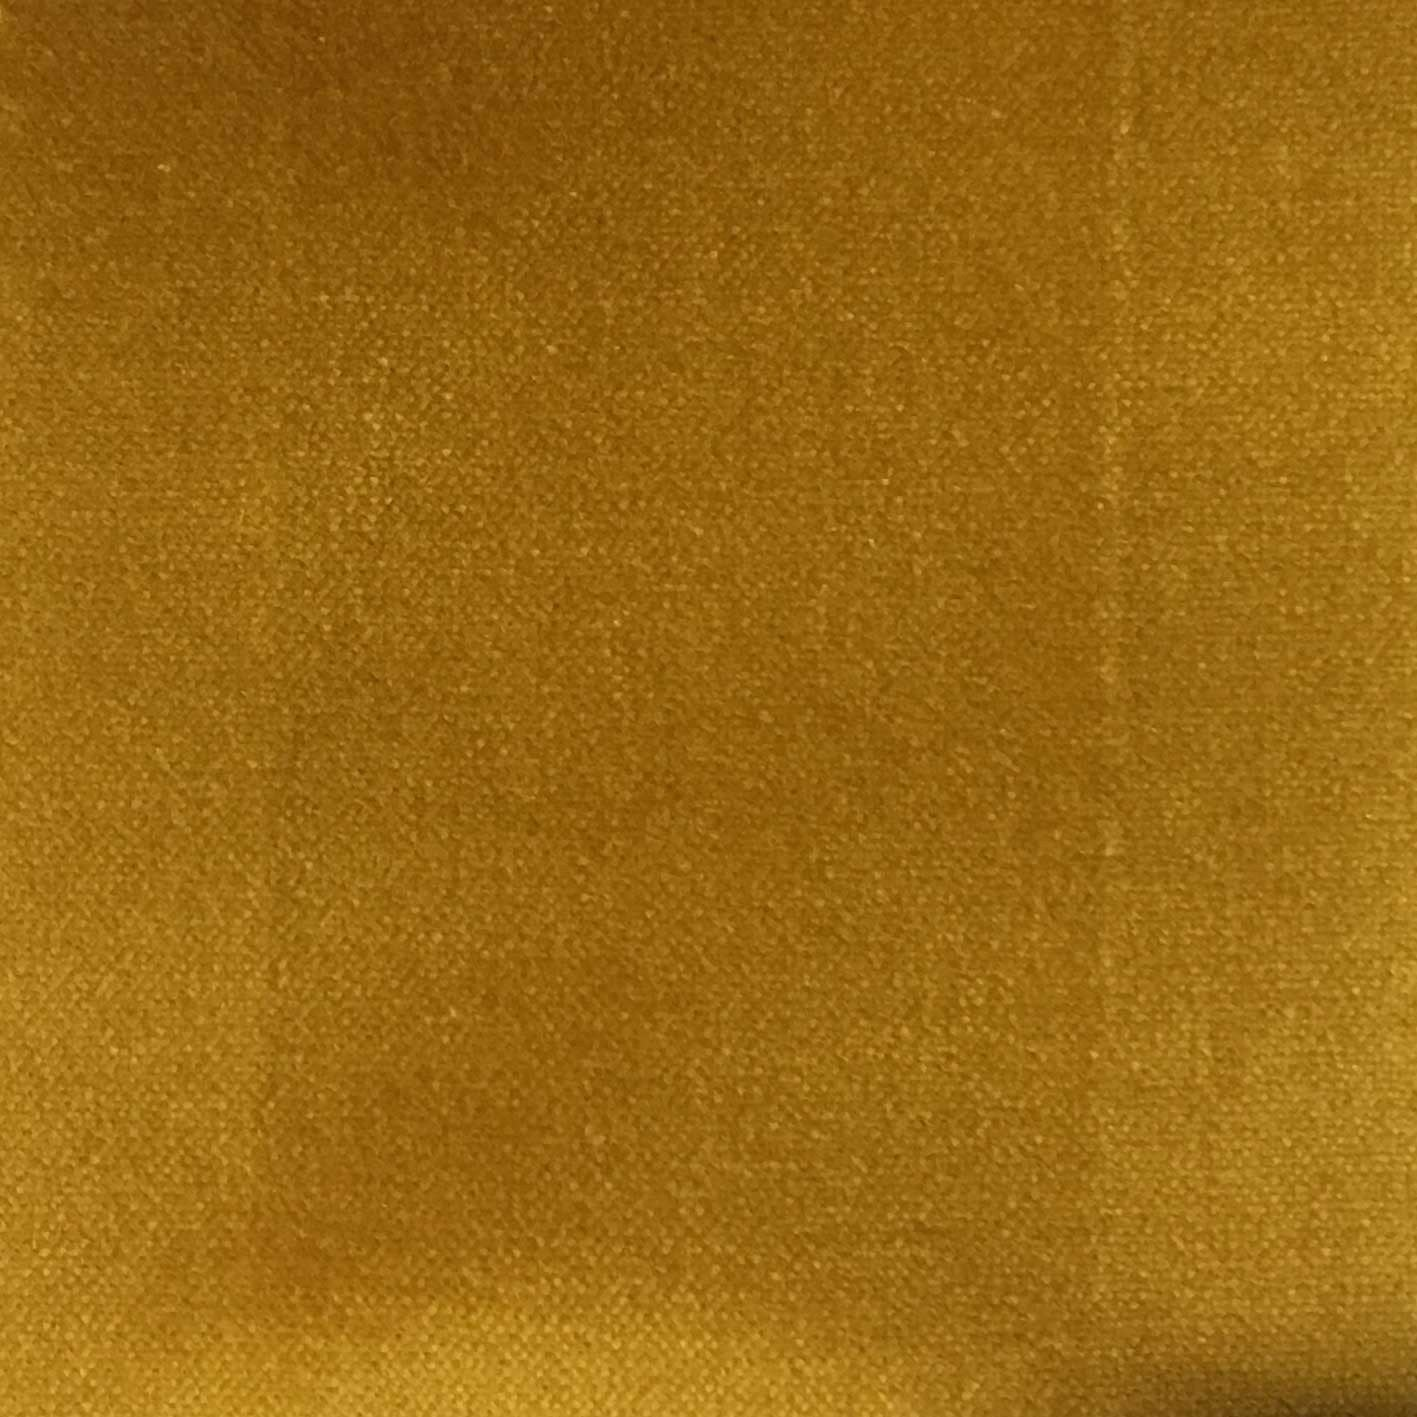 Brown And Blue Home Decor Bowie 100 Cotton Velvet Upholstery Fabric By The Yard